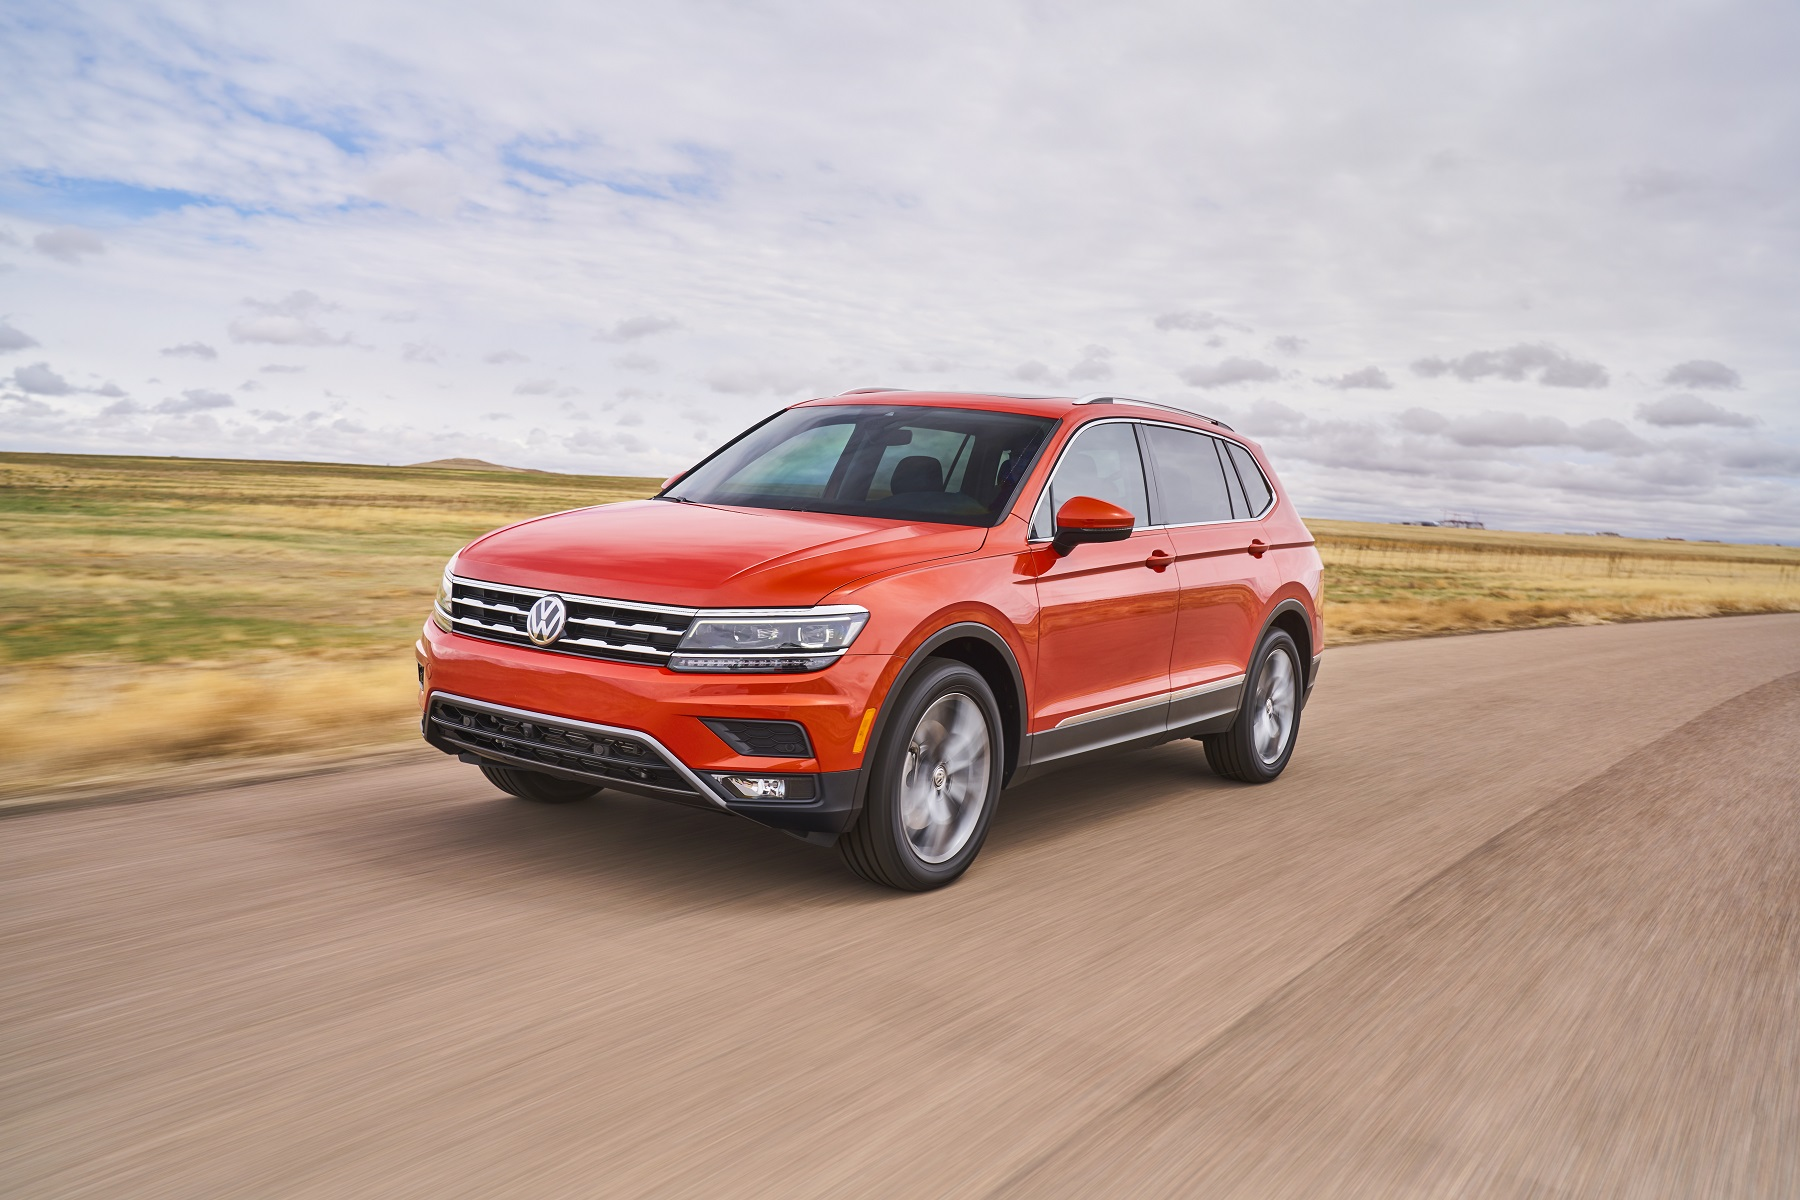 volkswagen tiguan all new for 2018 new on wheels groovecar. Black Bedroom Furniture Sets. Home Design Ideas